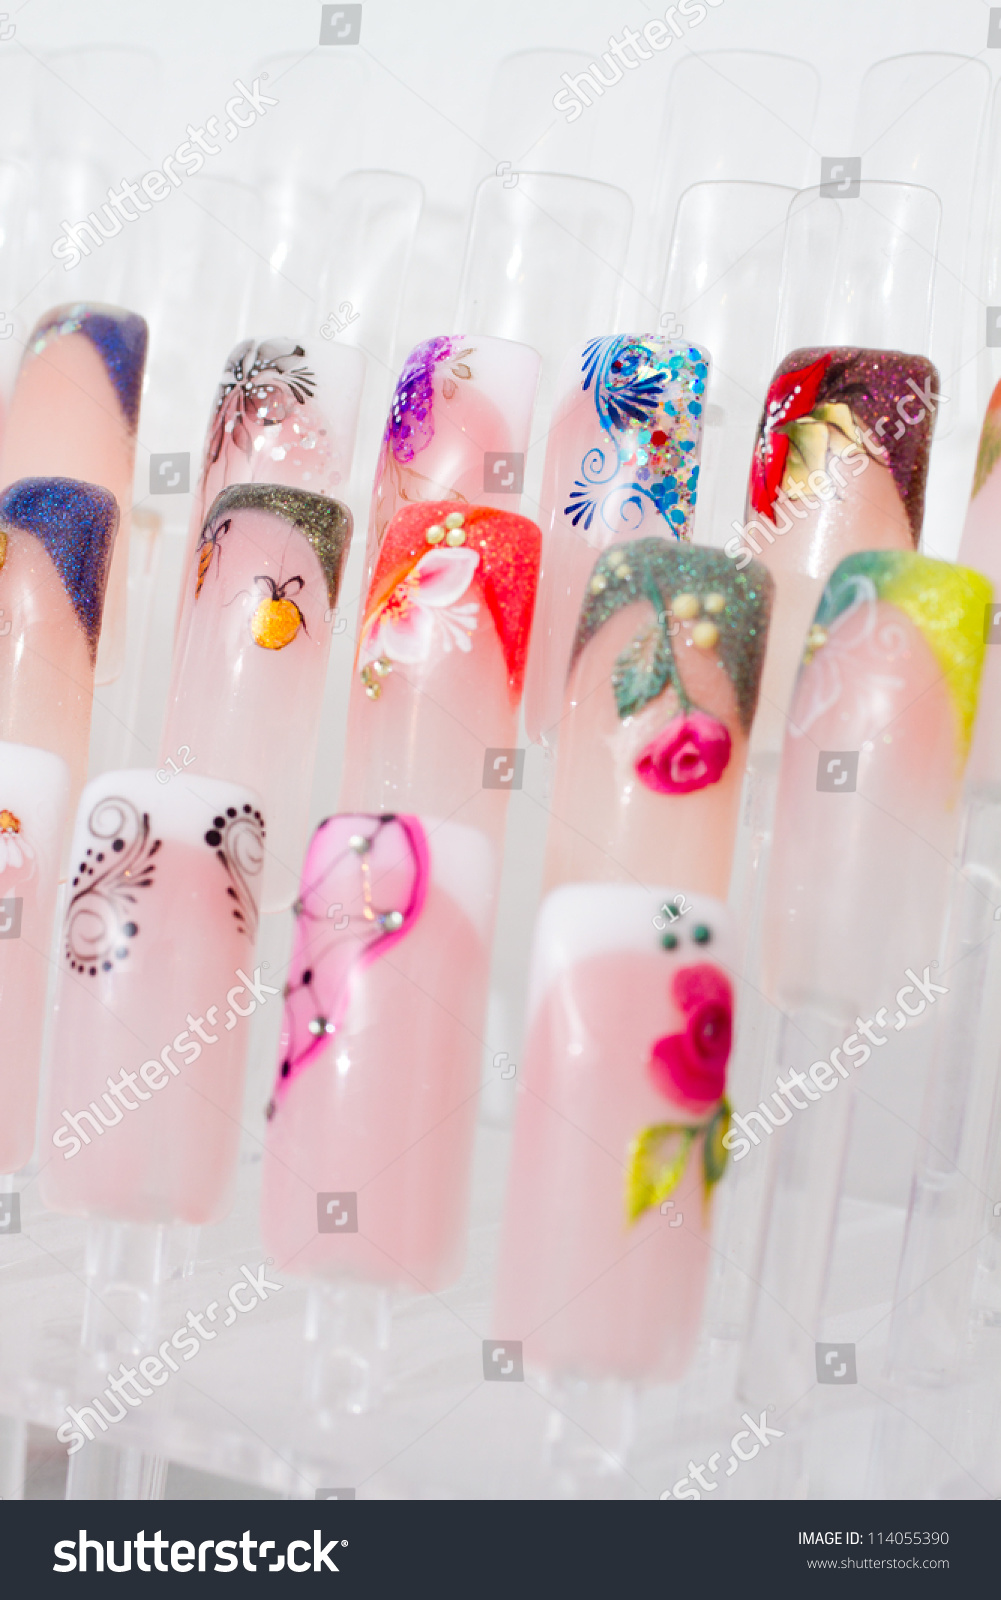 Nail Samples, Big Collection Of Finger Nails In Various